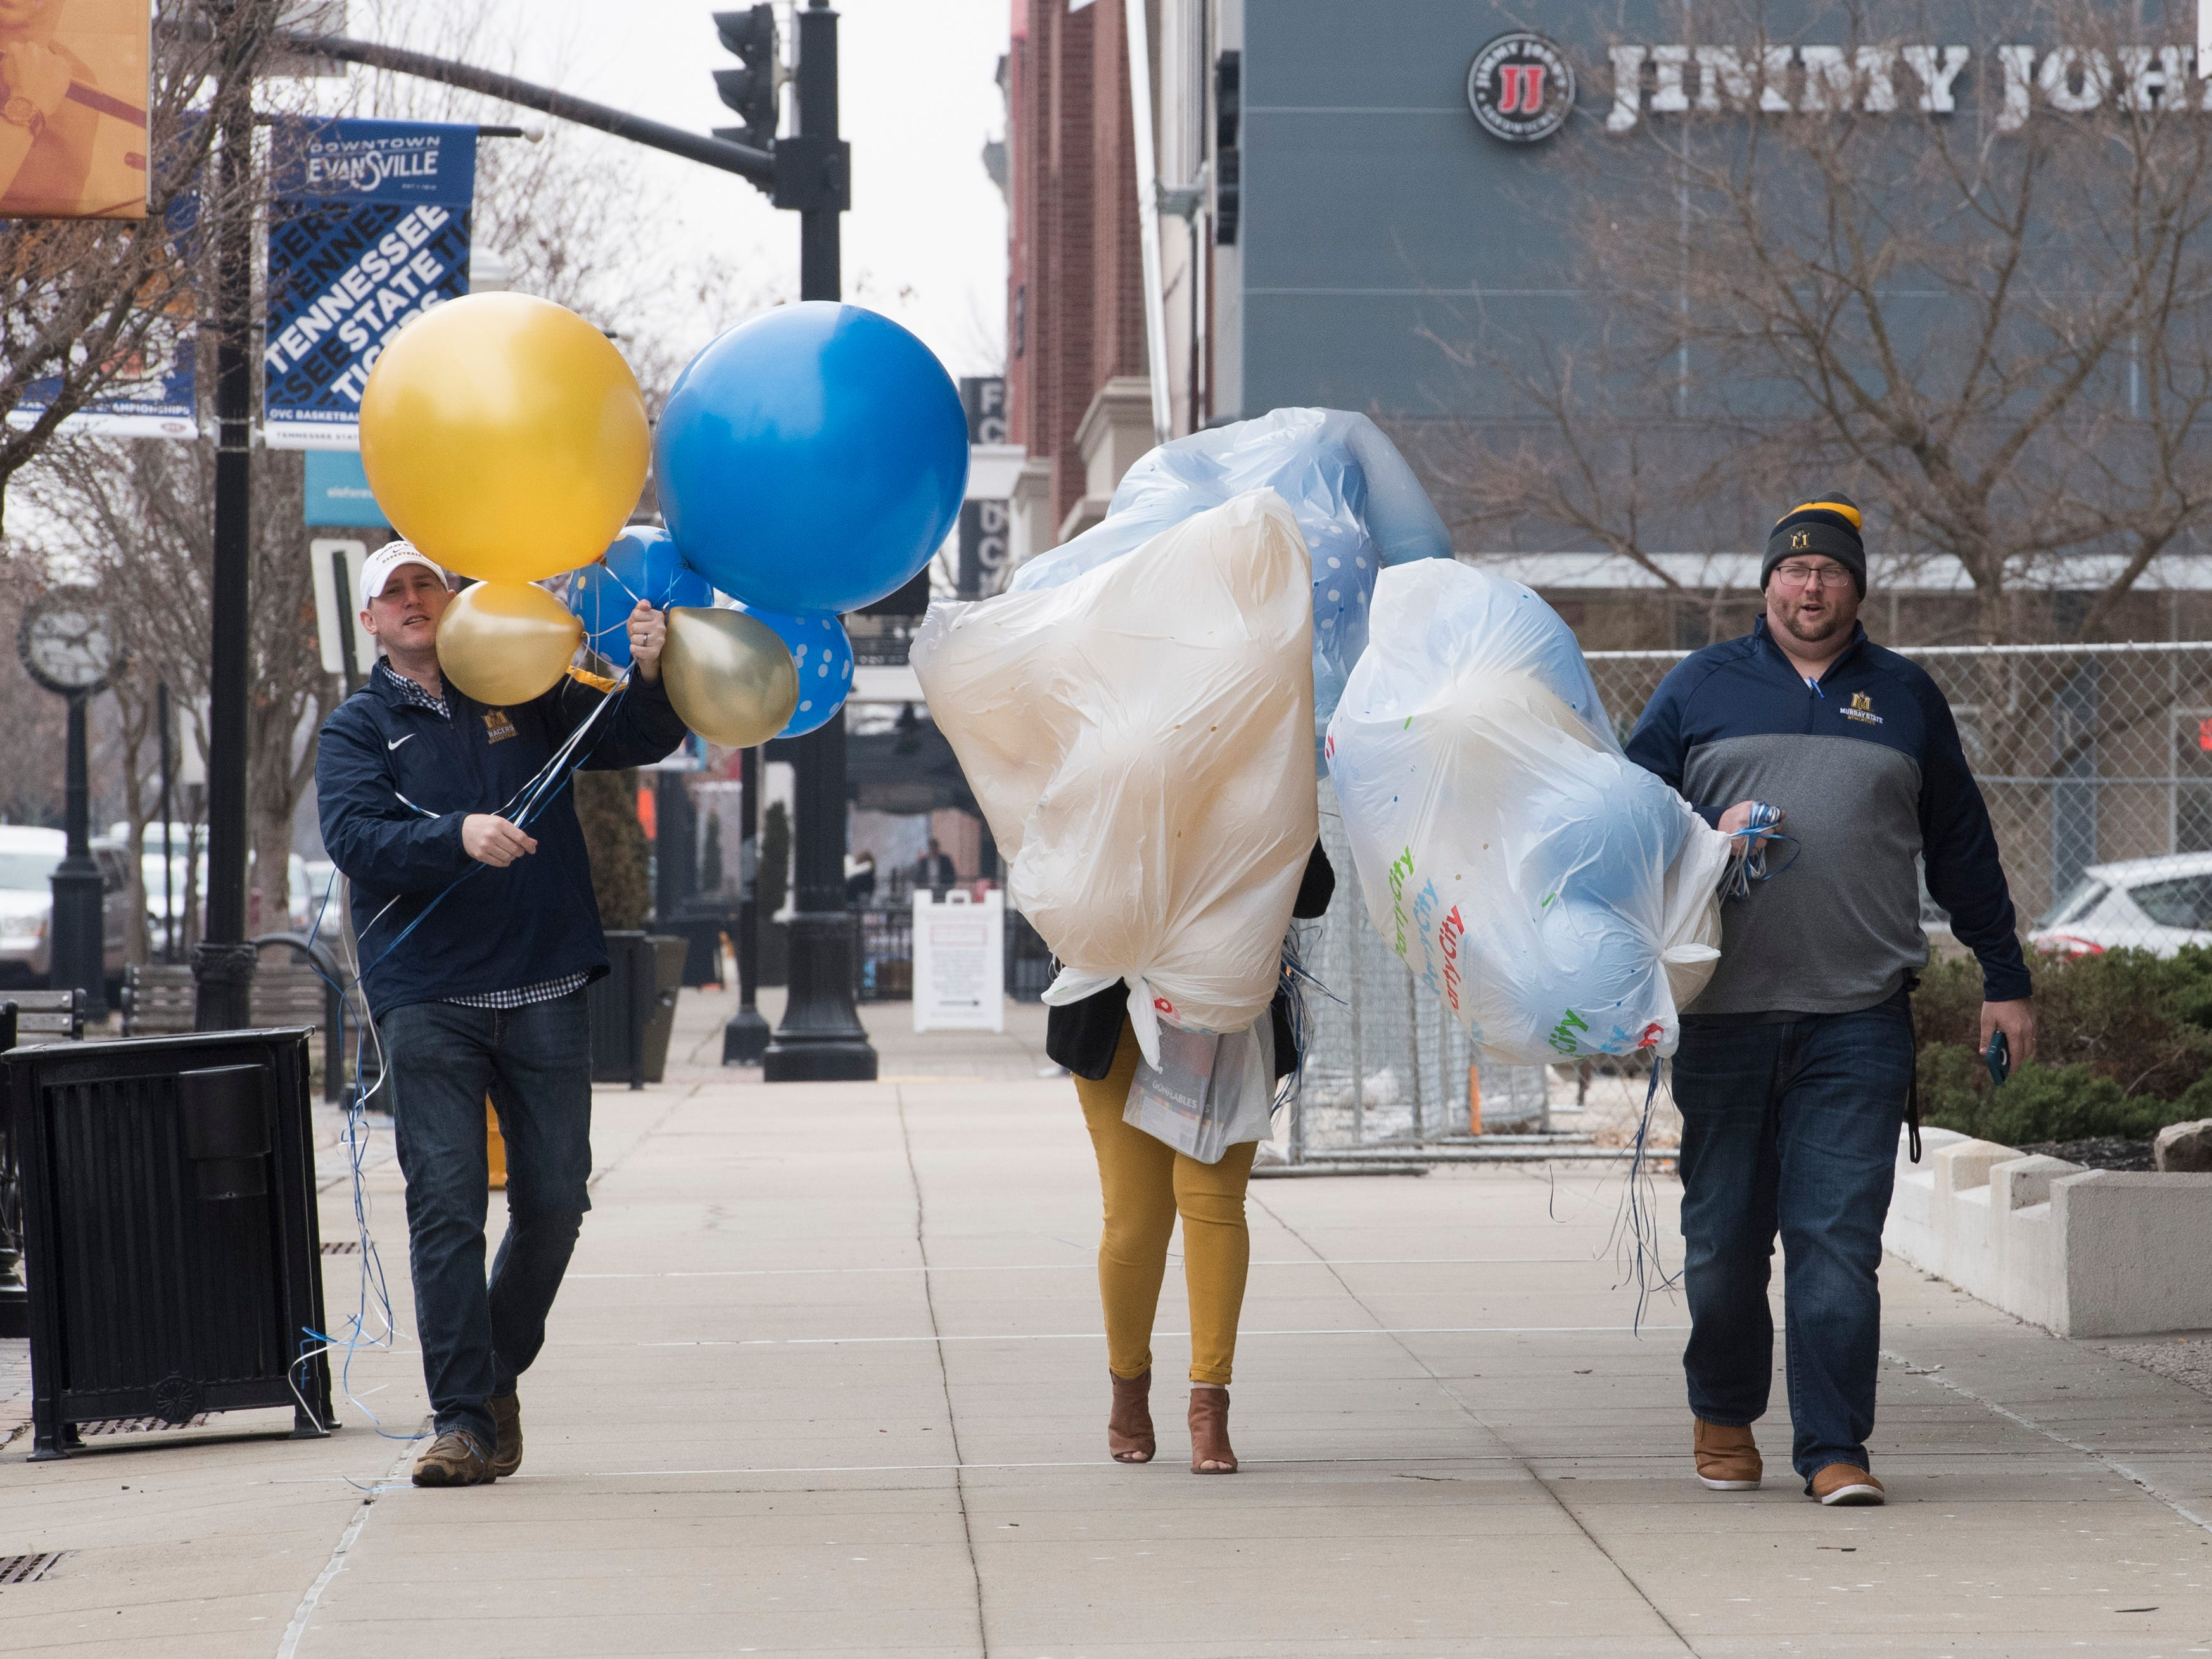 Austin Wyatt, left, Amy Wyatt, middle, and Brock Rydecki, right, carry balloons down Main Street in Downtown Evansville to decorate Kevin's Backstage Bar and Grill for the Murray State pregame party before the Racers take on the Jacksonville Gamecocks in the Ohio Valley Conference Tournament at the Ford Center in Evansville, Ind., Friday, March 8, 2019.